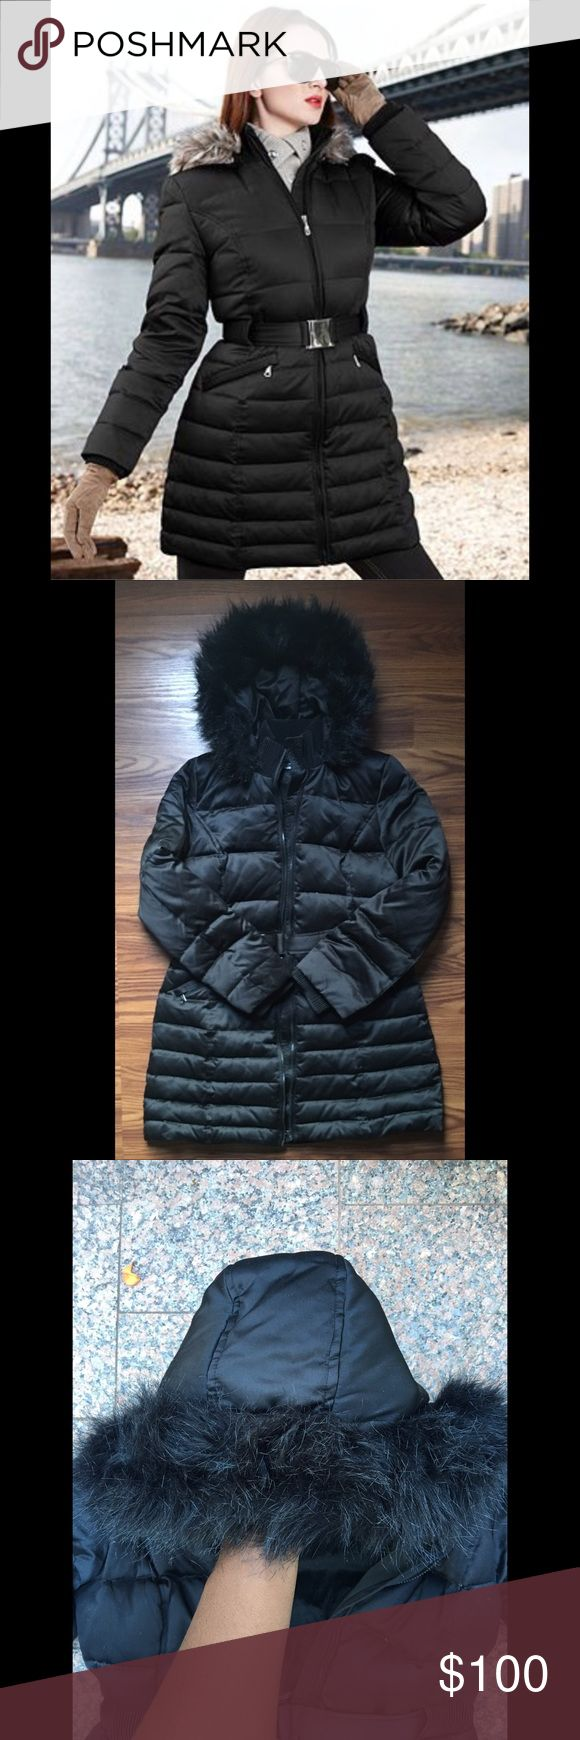 DKNY Winter Puffer Coat Polyester Down Coat.  Faux Fur Trim  Warm and Cozy Perfect for upcoming winter months Great Condition  No rips, tears, stains or holes  Tags: DKNY, Zara, Michael Kors, Calvin Klein, Bebe, Puffer coat, Down coat, winter coat, winter jacket, Zara Jackets & Coats Puffers